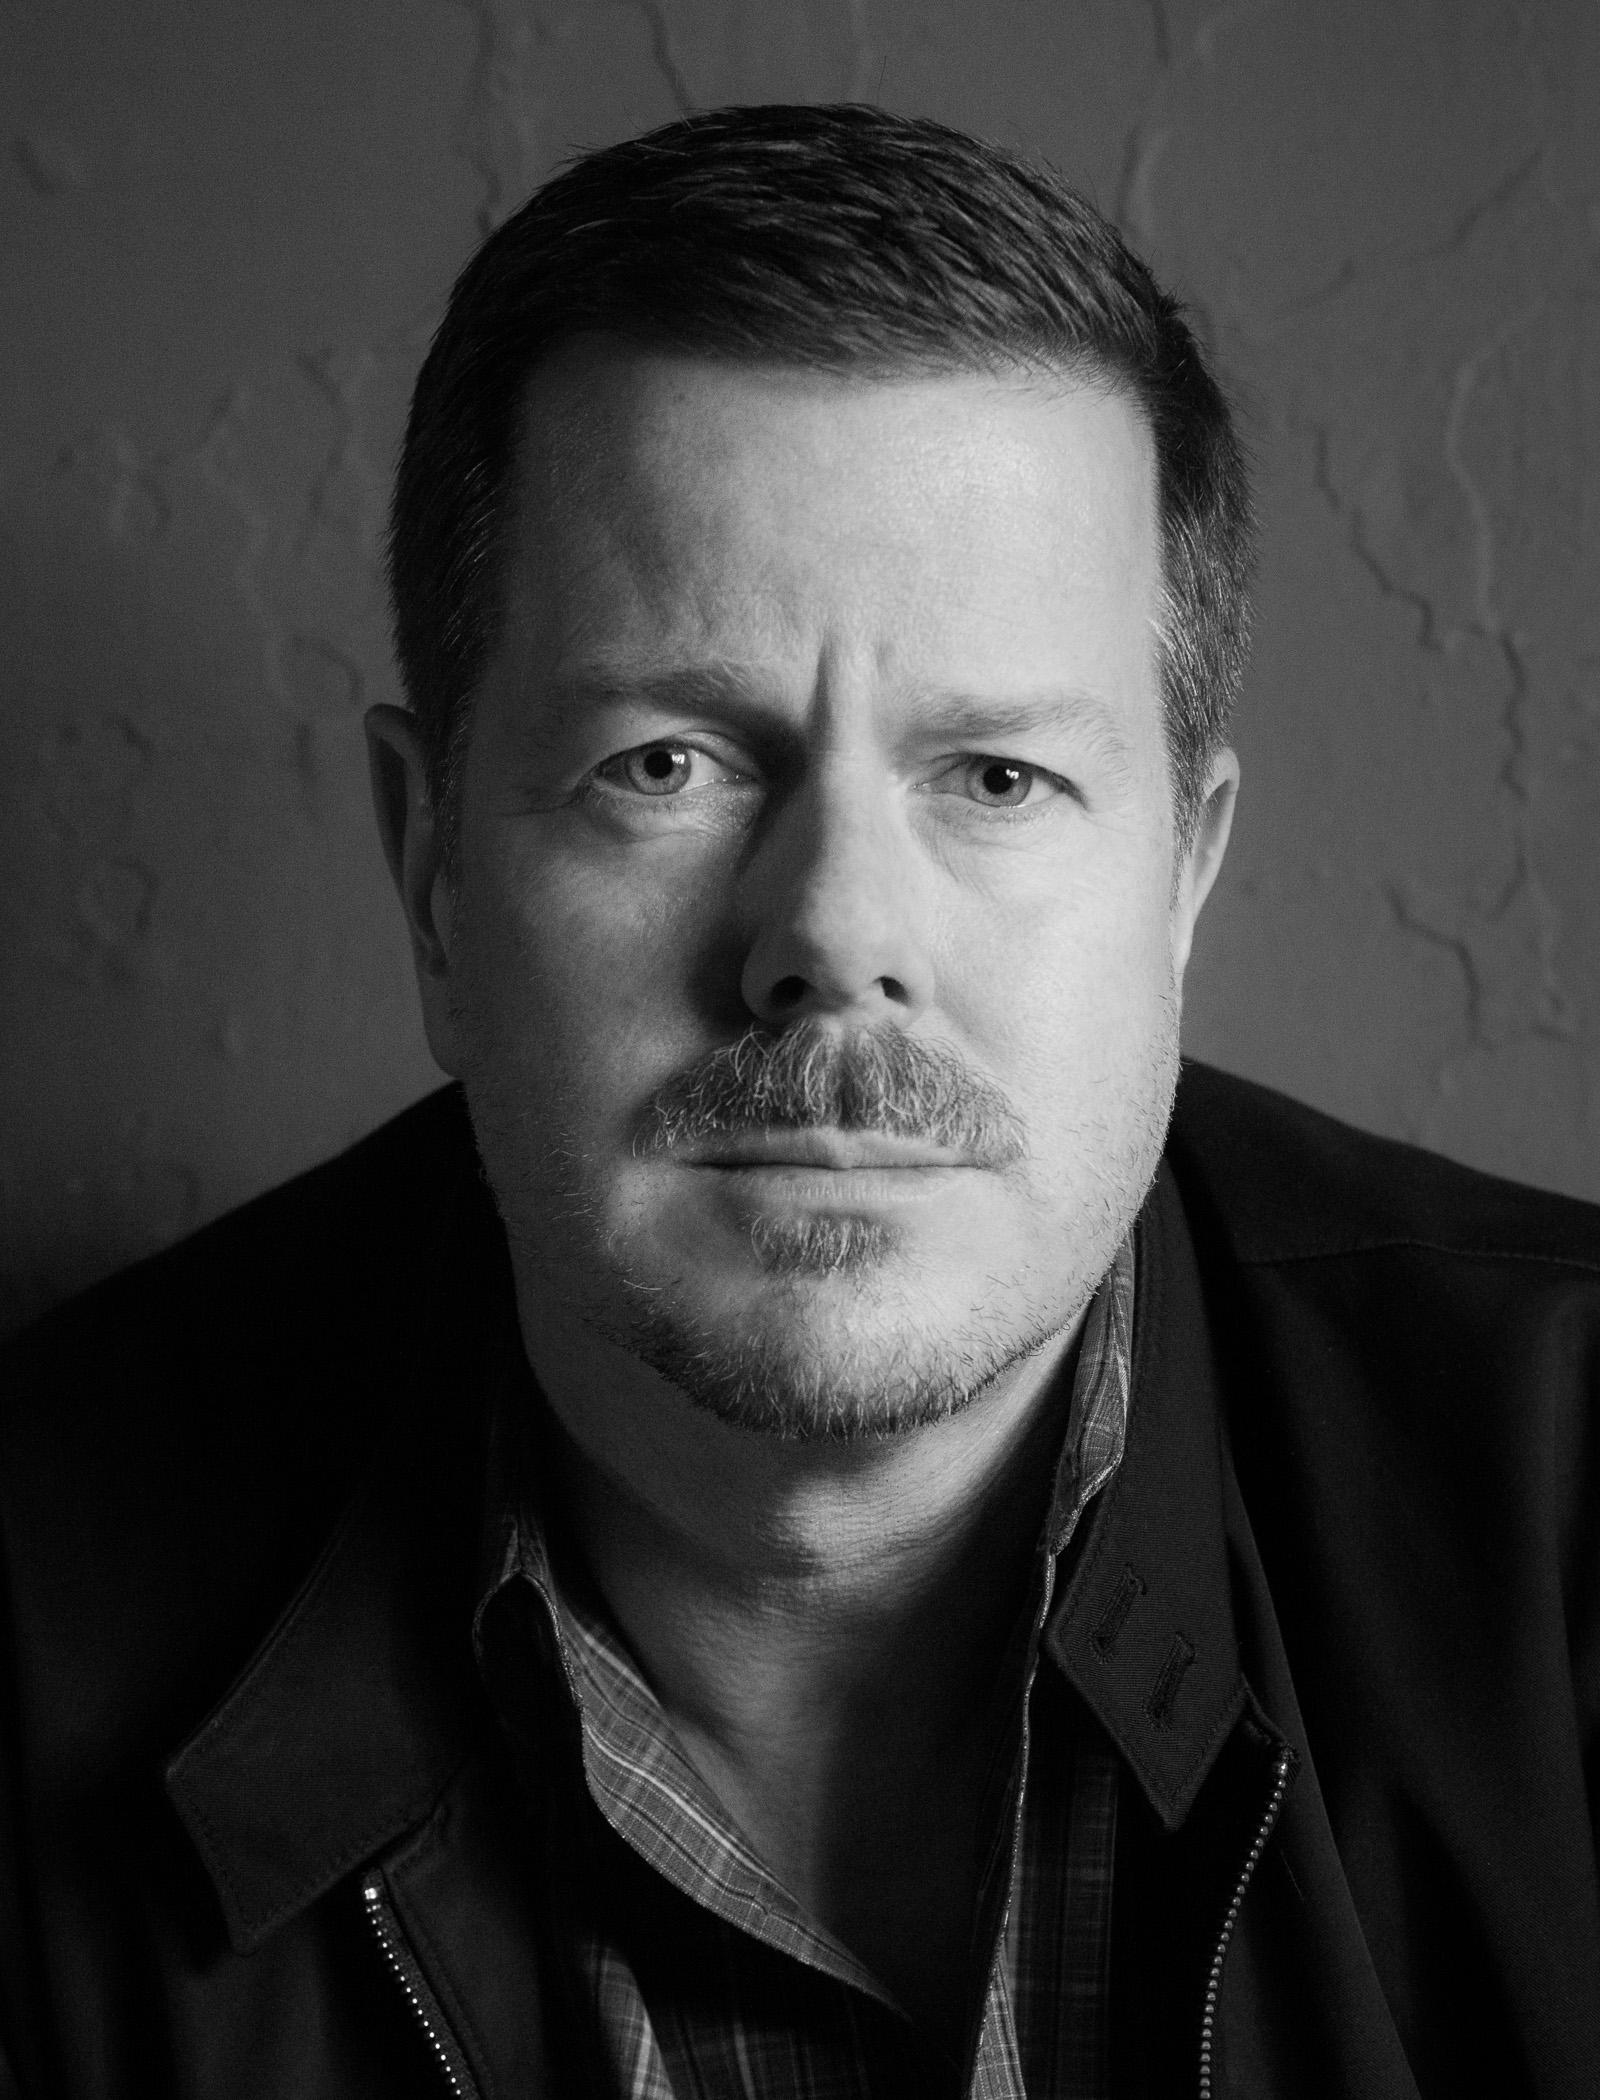 Black-and-white portrait of a man with a goatee looking directly at the camera